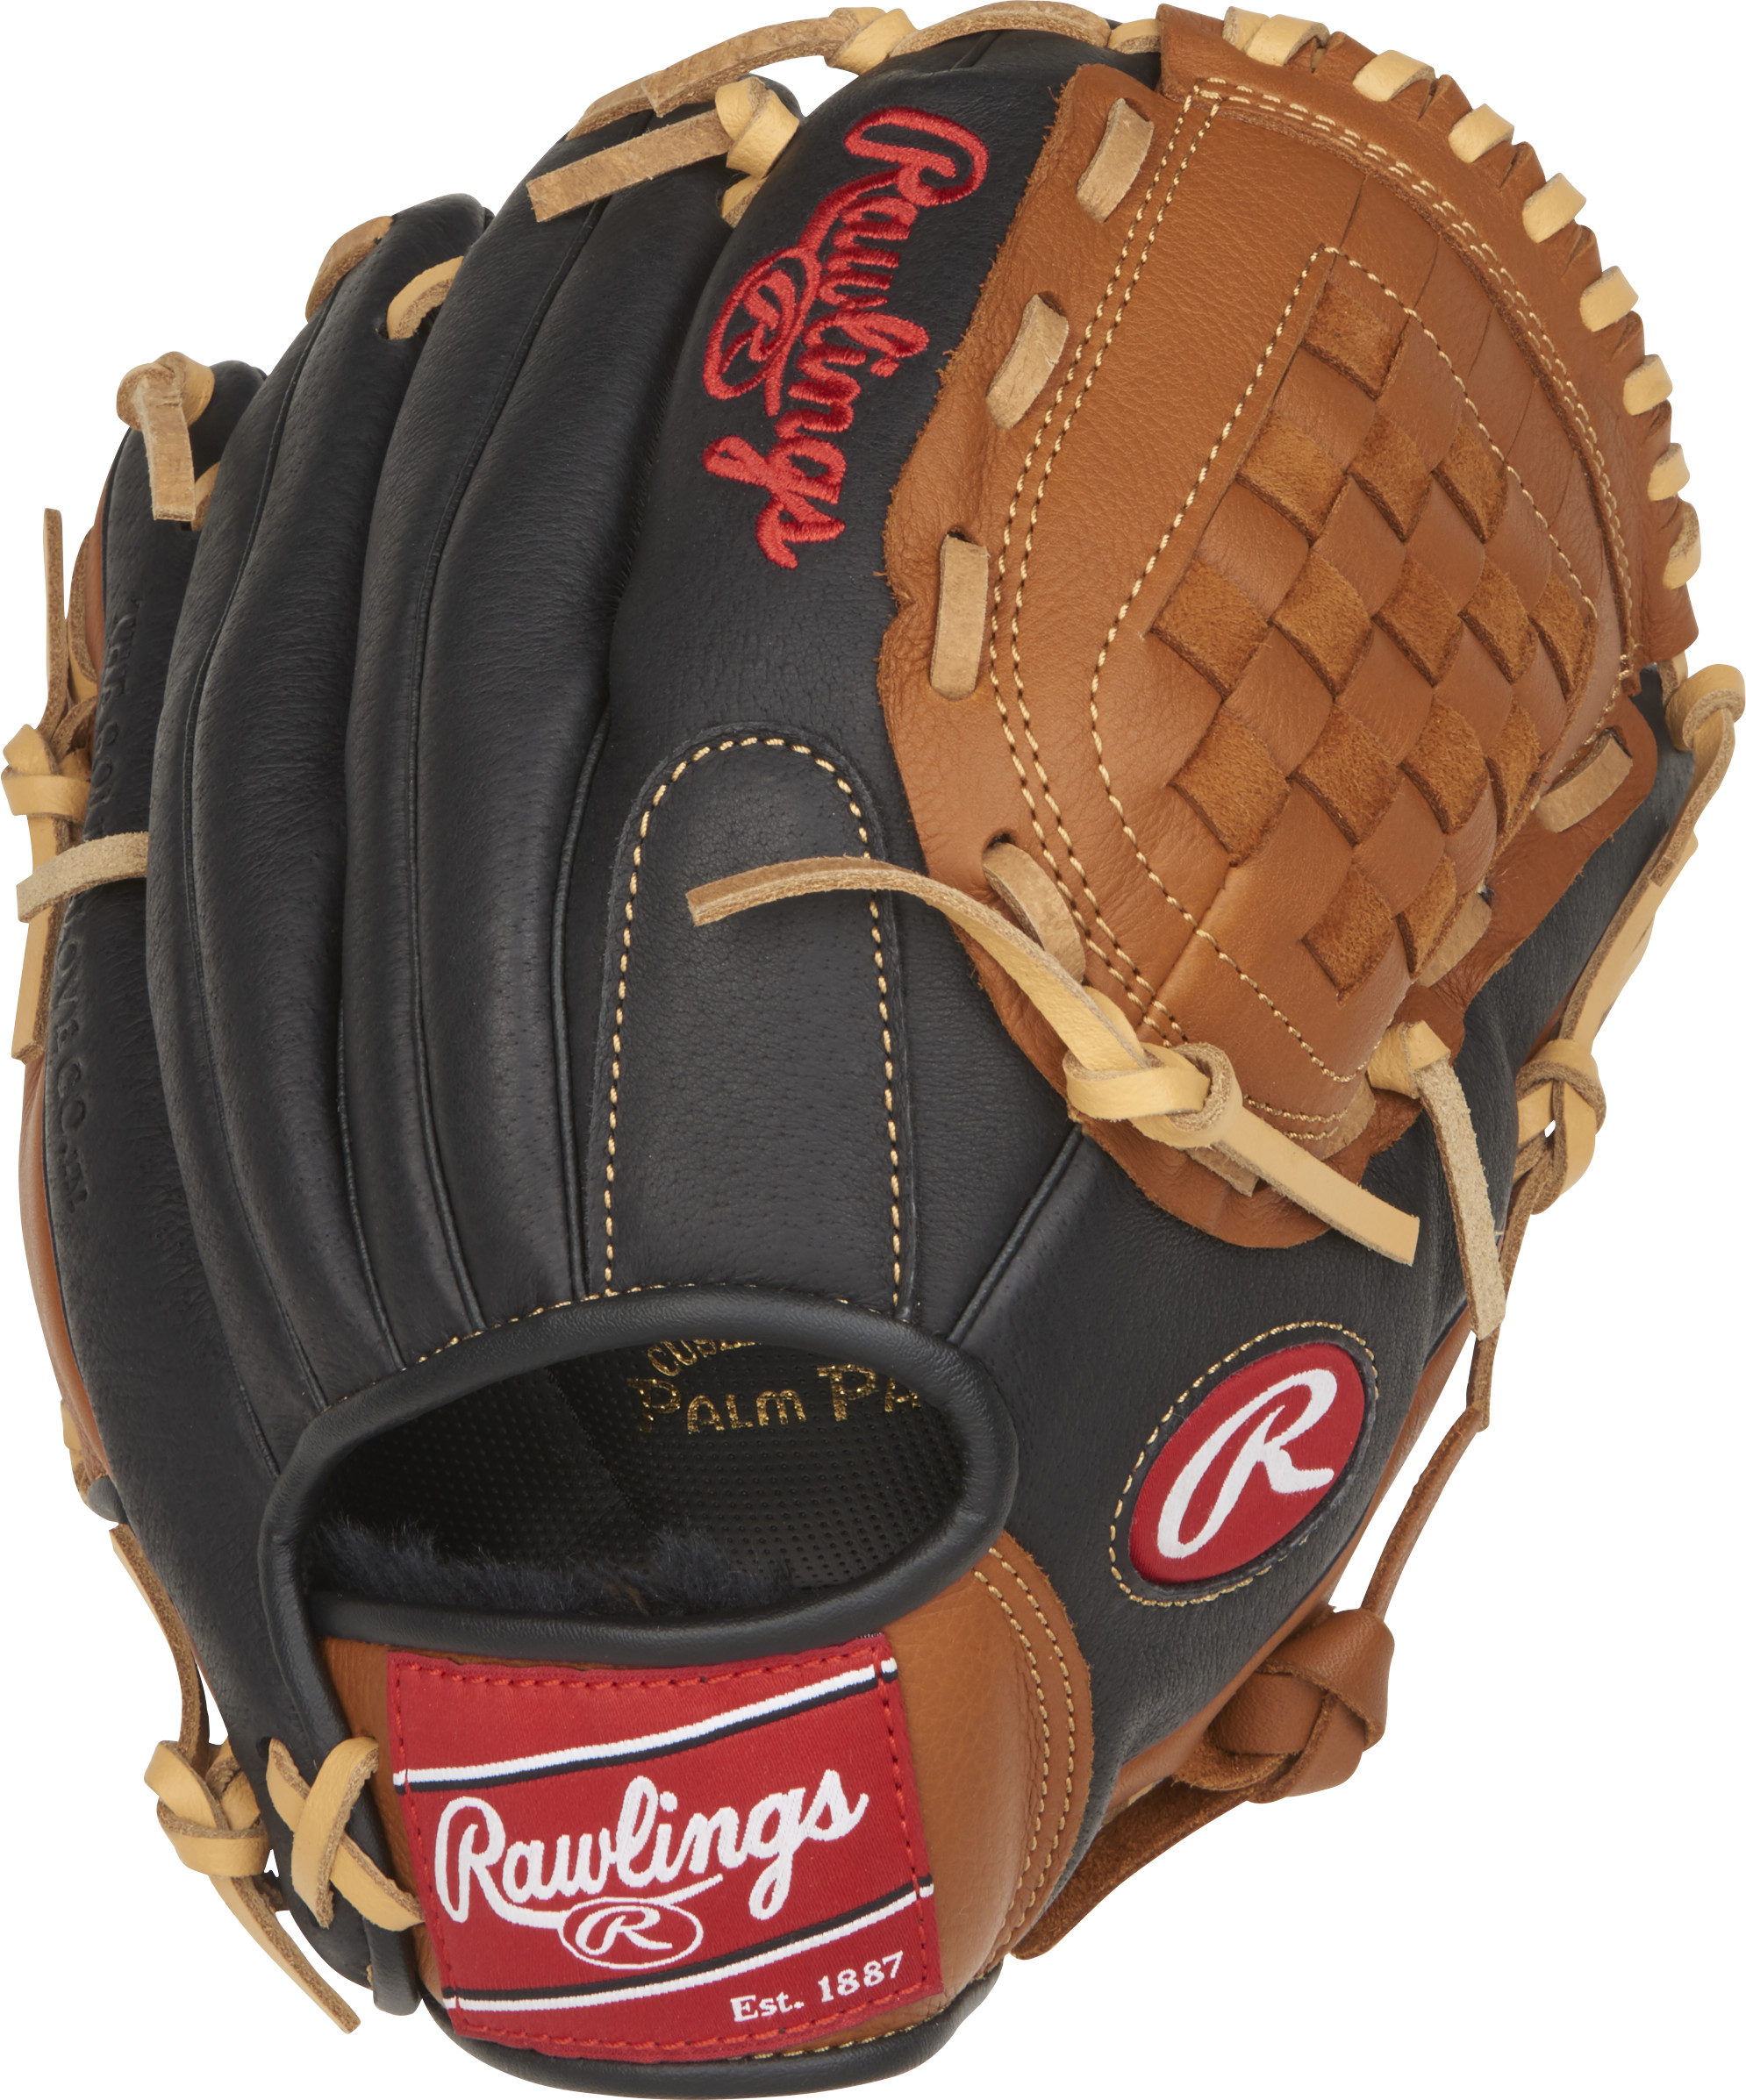 http://www.bestbatdeals.com/images/gloves/rawlings/P110GBB-2.jpg